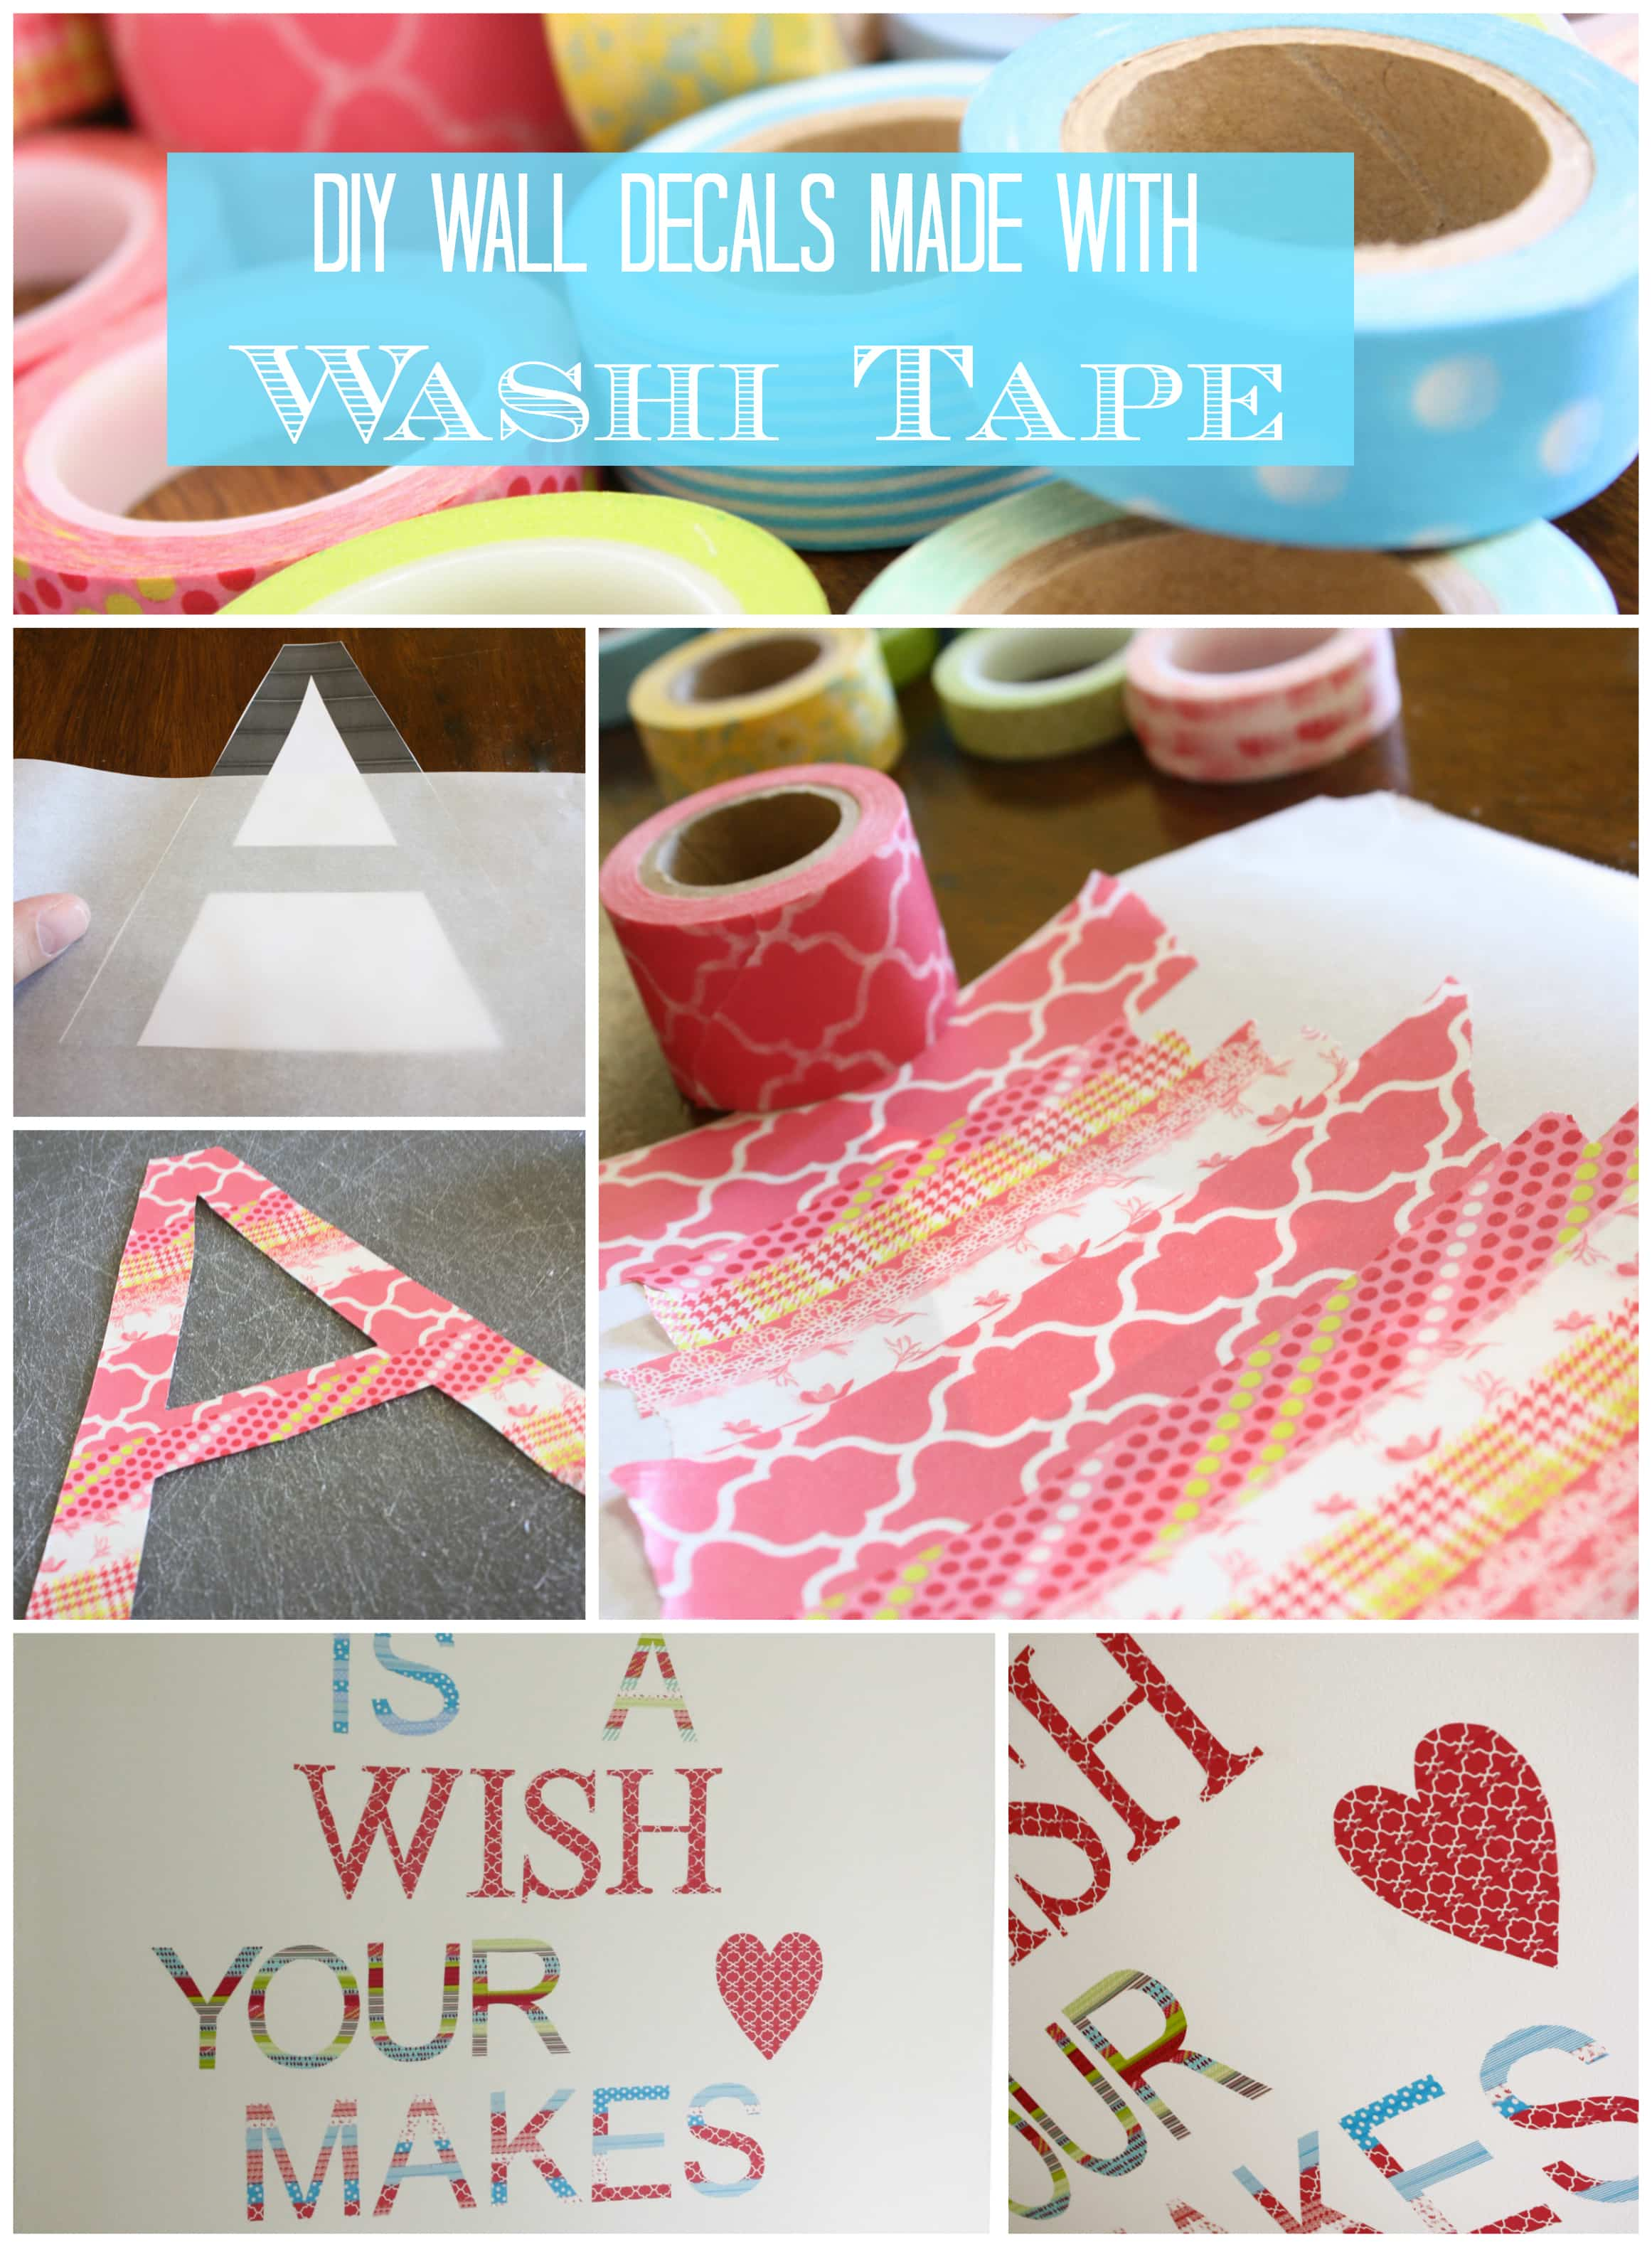 DIY Washi Tape Wall Decals